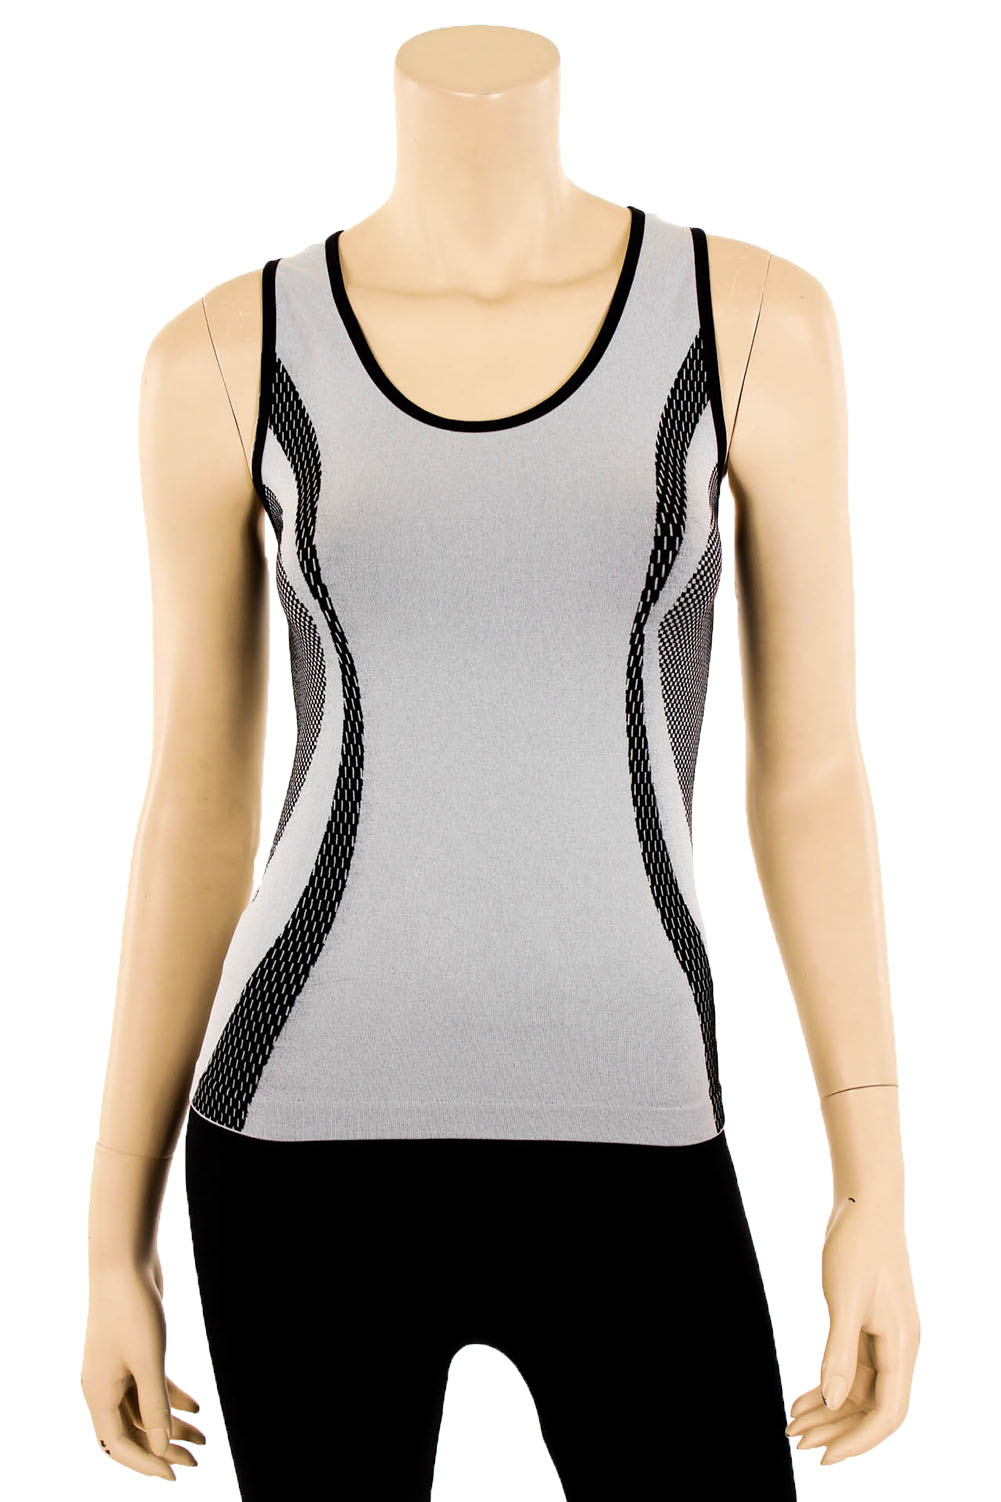 Official Site: Shop women's athletic tank tops from ASICS. FREE SHIPPING and returns on all orders with a Day money back guarantee!